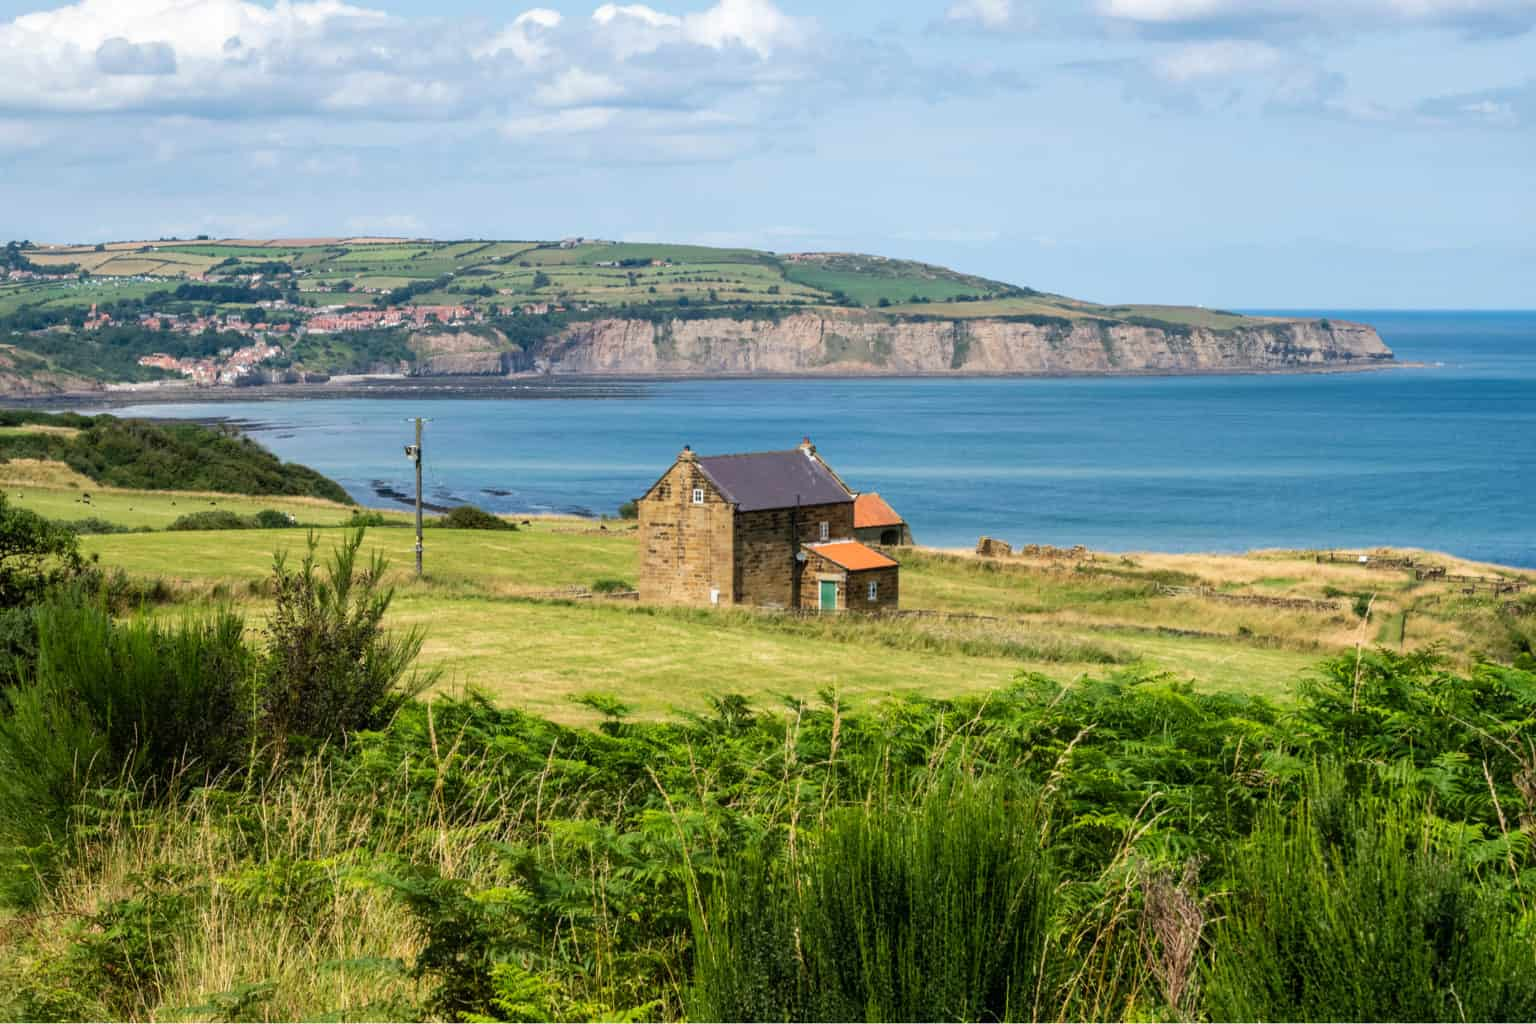 Cleveland Way between Cloughton and Robin Hoods Bay in North Yorkshire